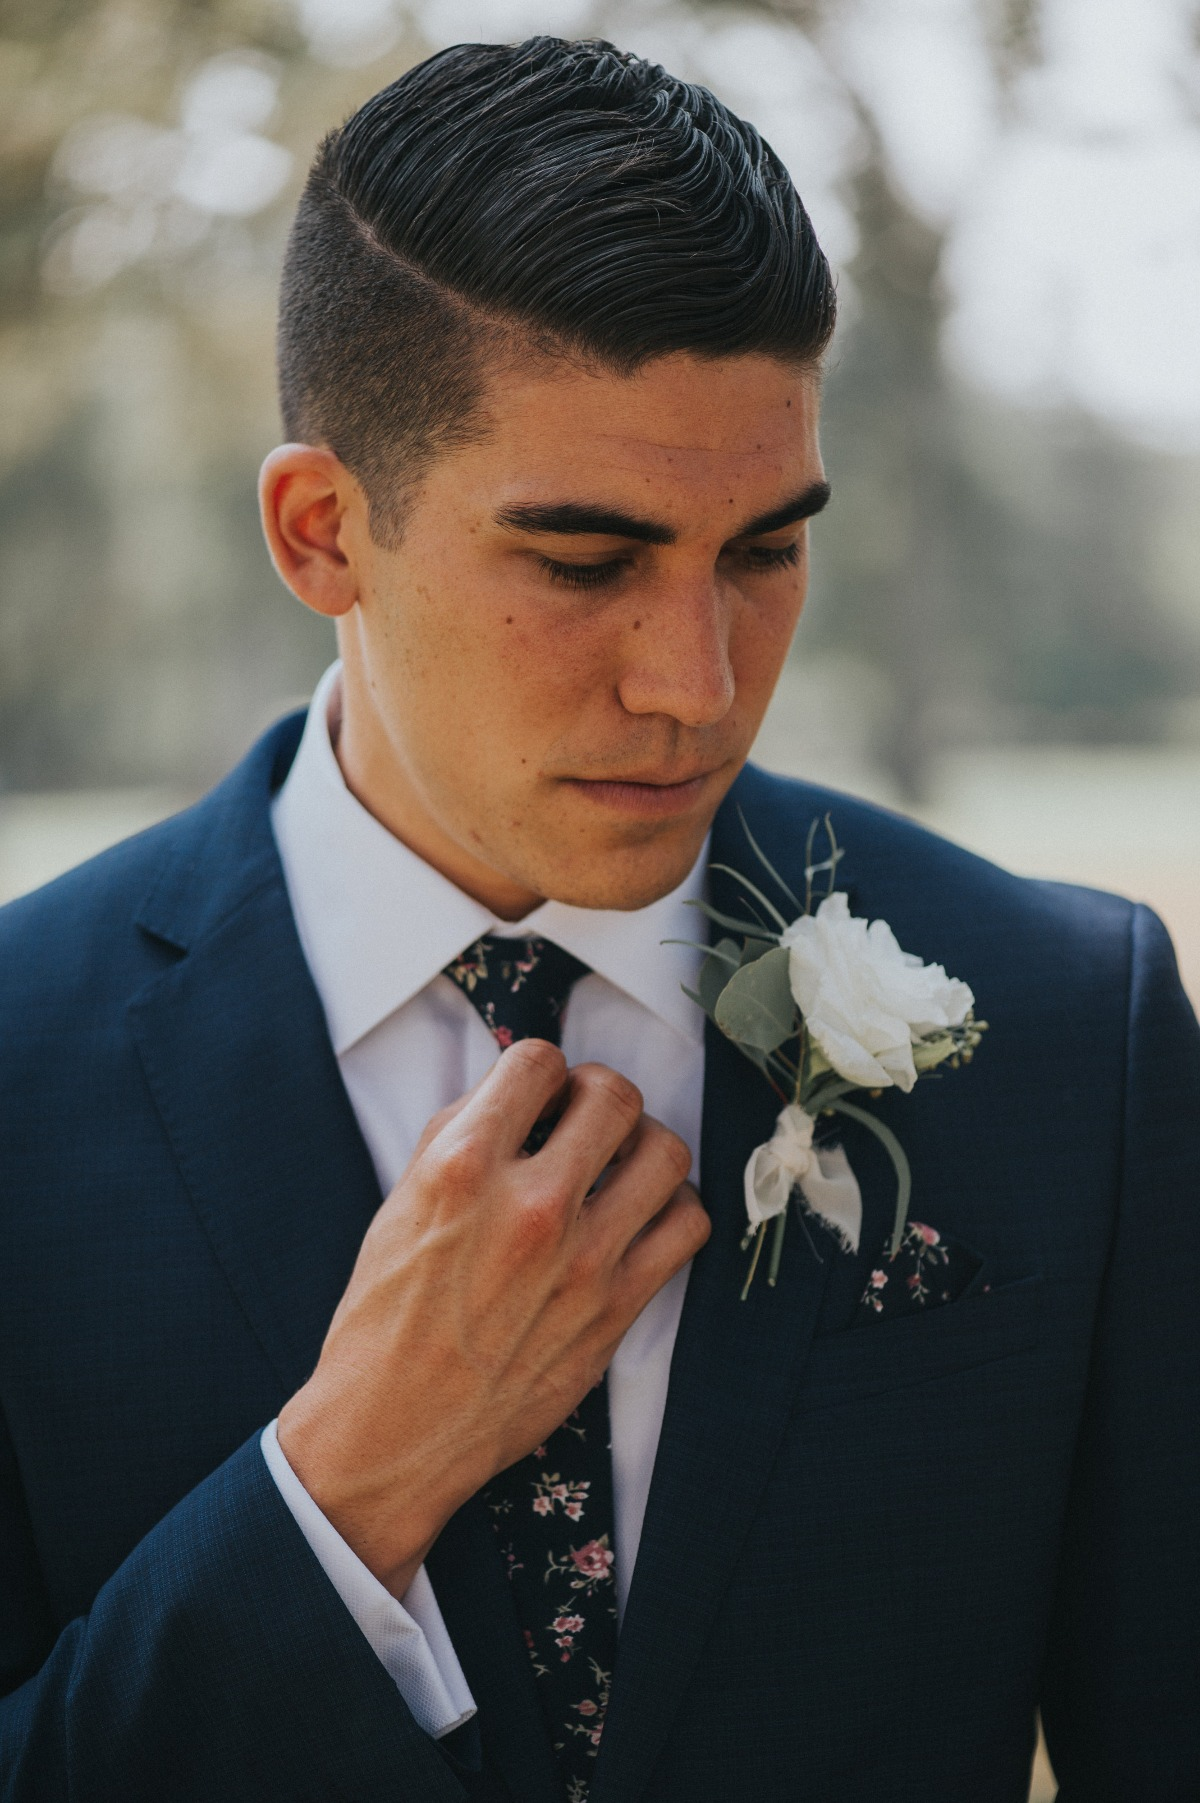 groom in navy suite with floral tie and pocket square